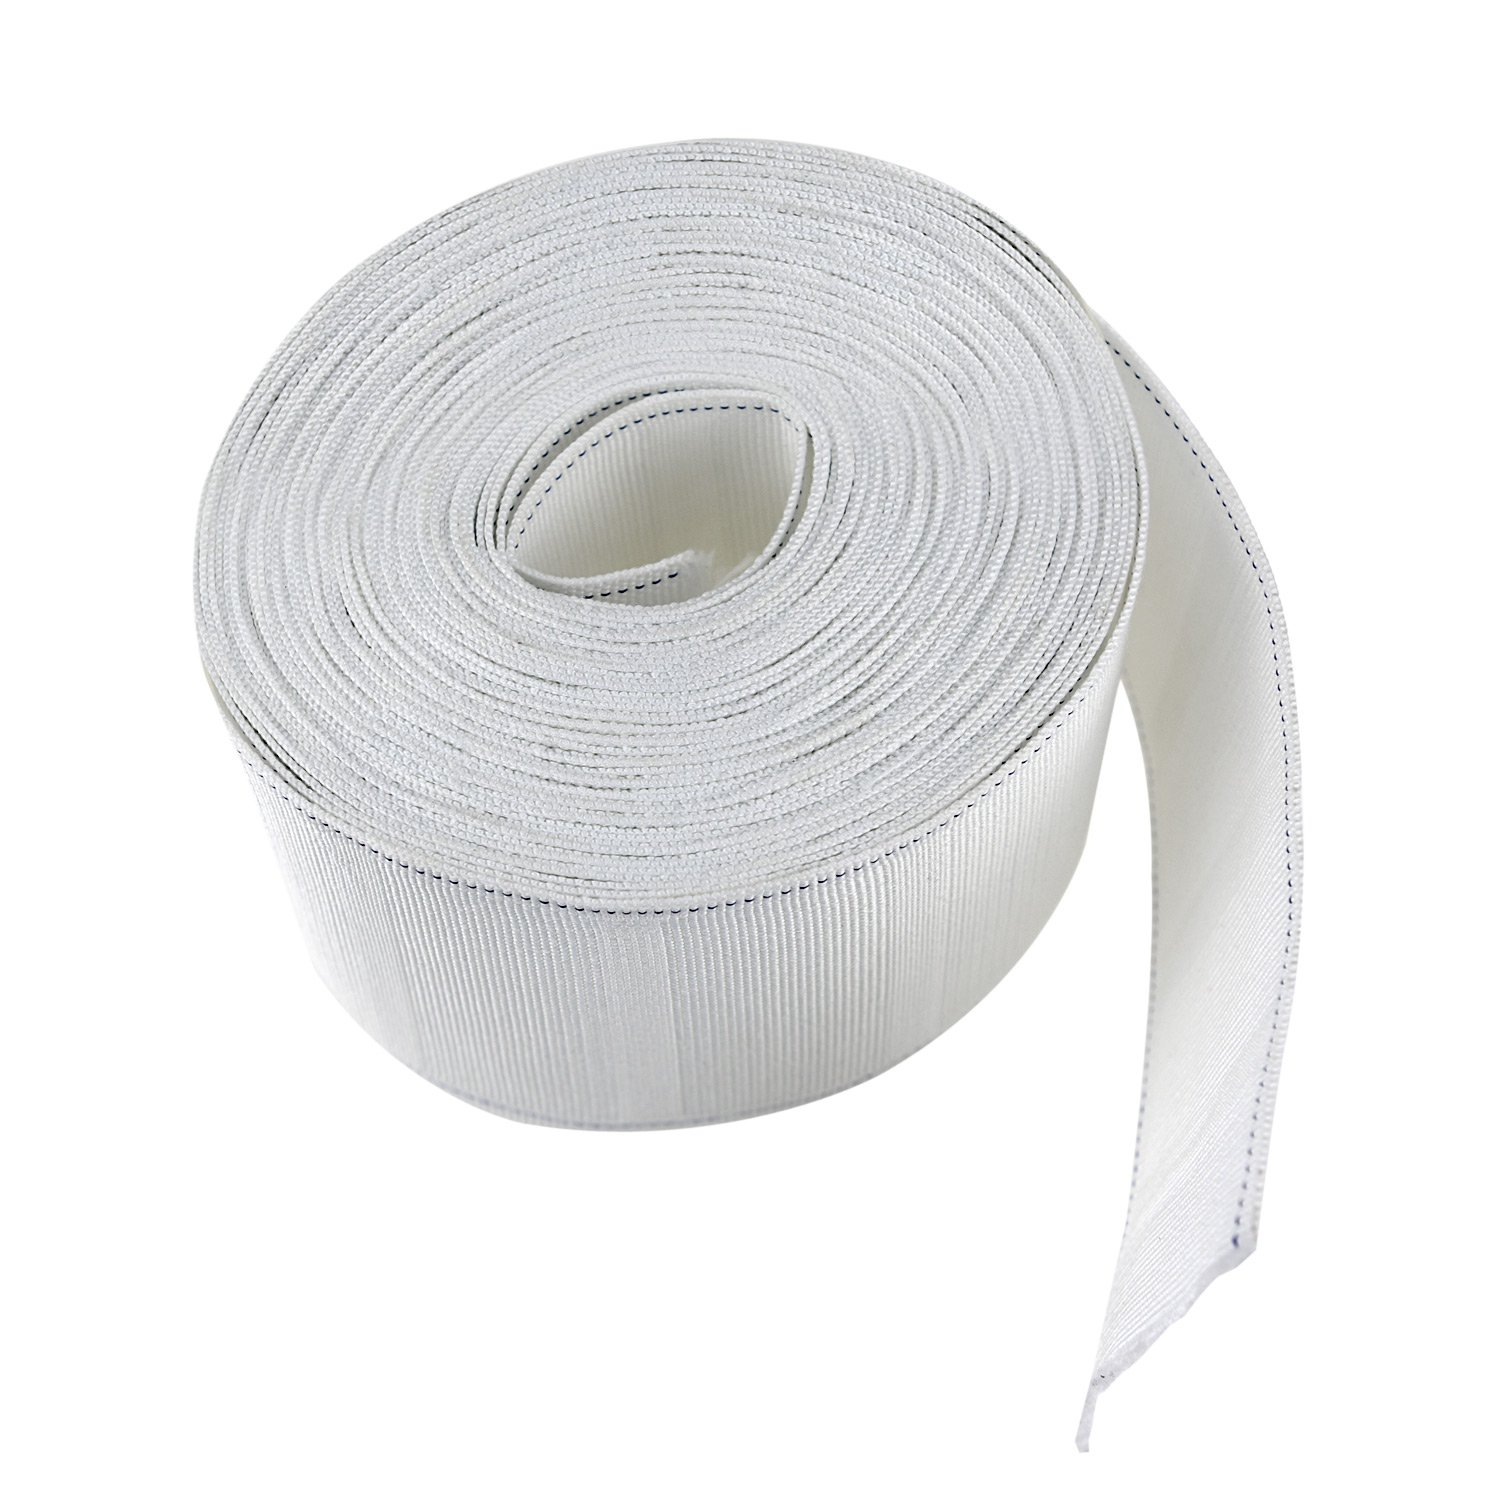 NKTM Curtain Tape 11 Yard Curtain Heading Deep Pinch Pleat Tape White